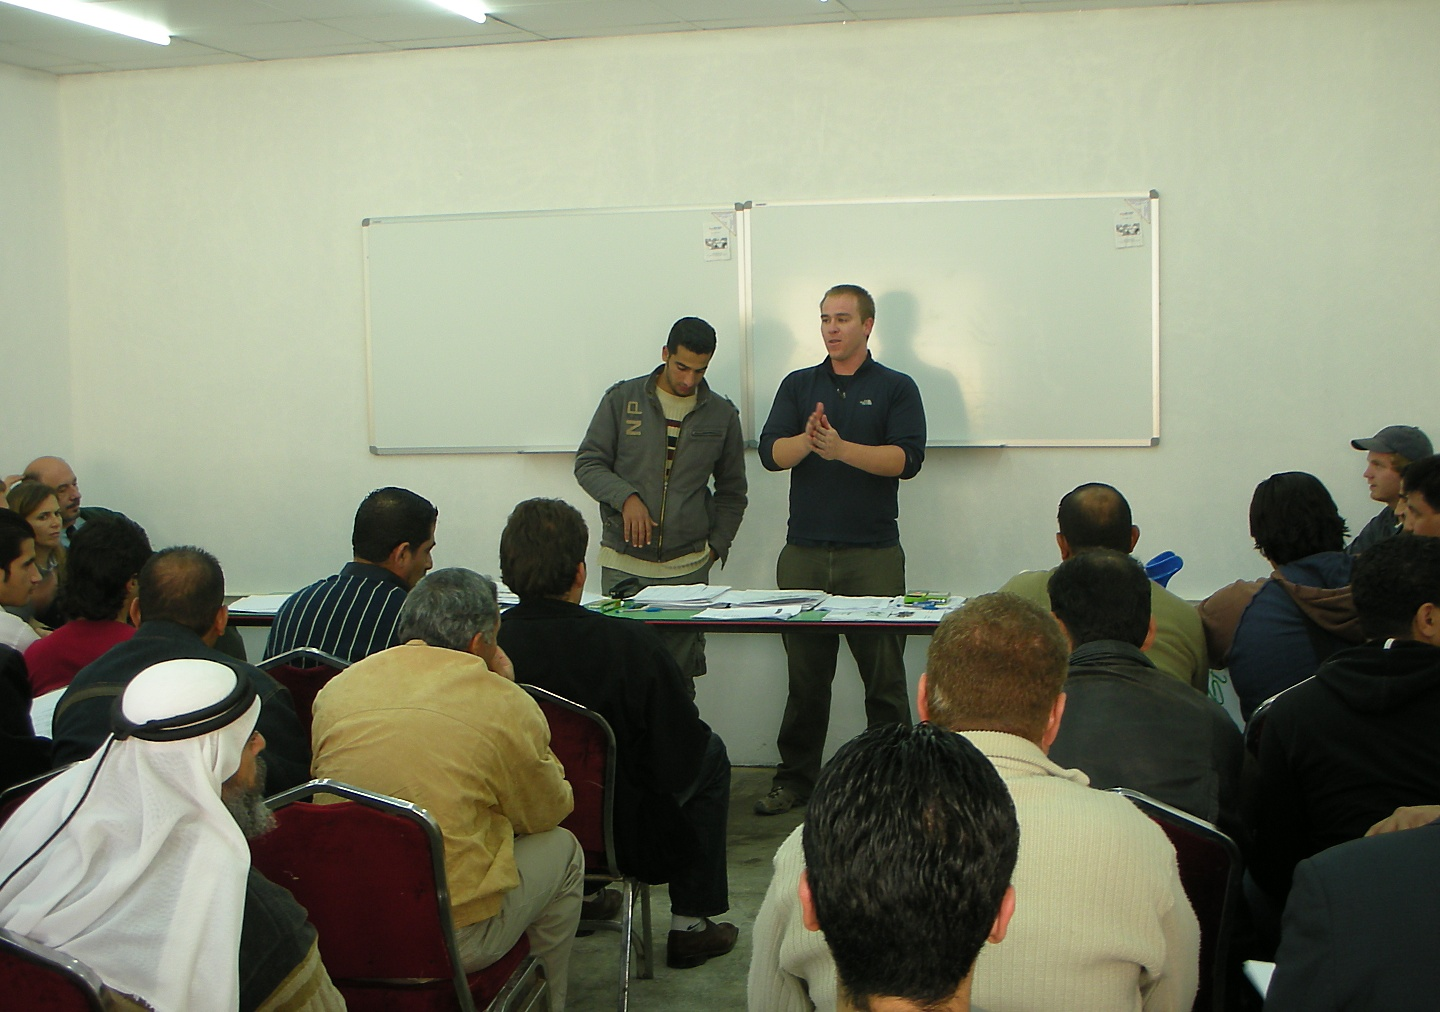 Ahmad and Aaron talk with the Iraqi refugees about the training program